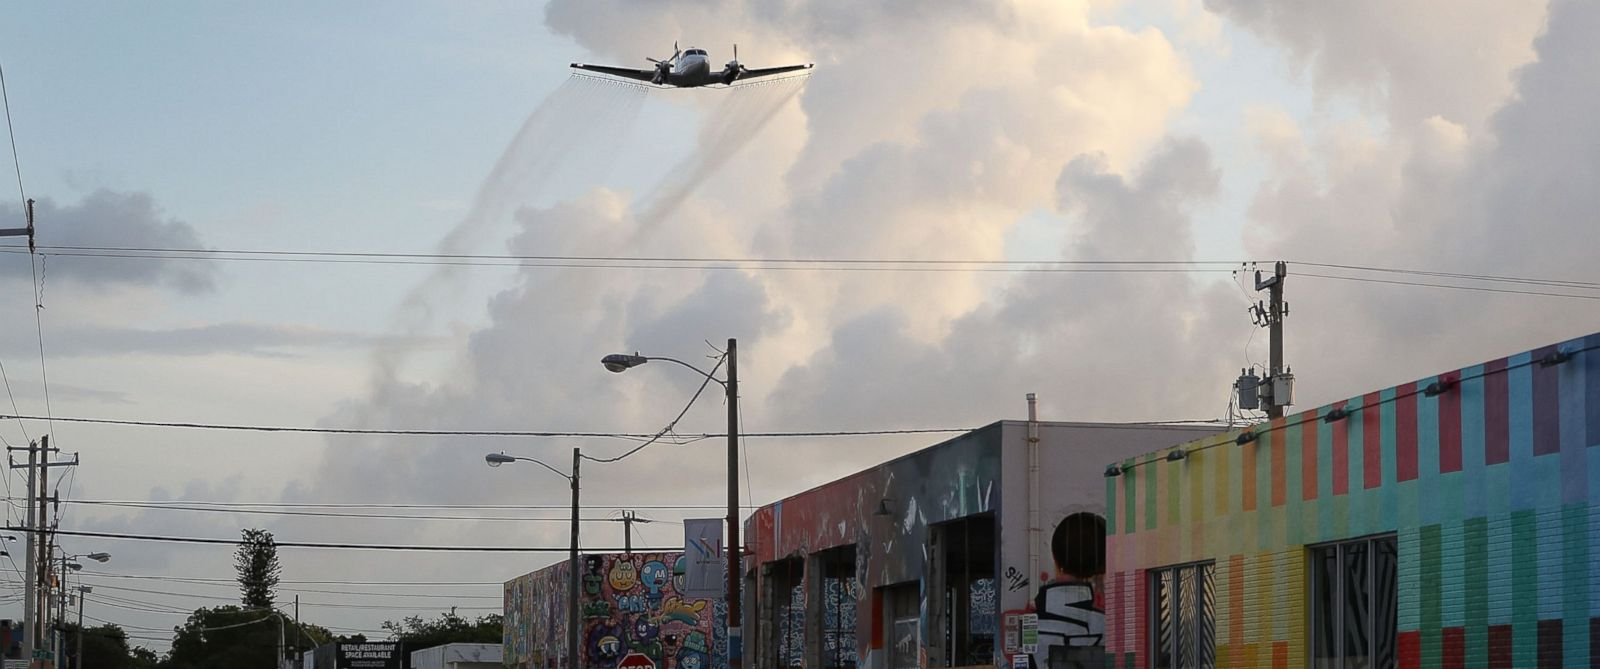 PHOTO:A plane sprays pesticide over the Wynwood neighborhood of Miami, FL in the hope of controlling and reducing the number of mosquitos, some of which may be capable of spreading the Zika virus on August 6, 2016.